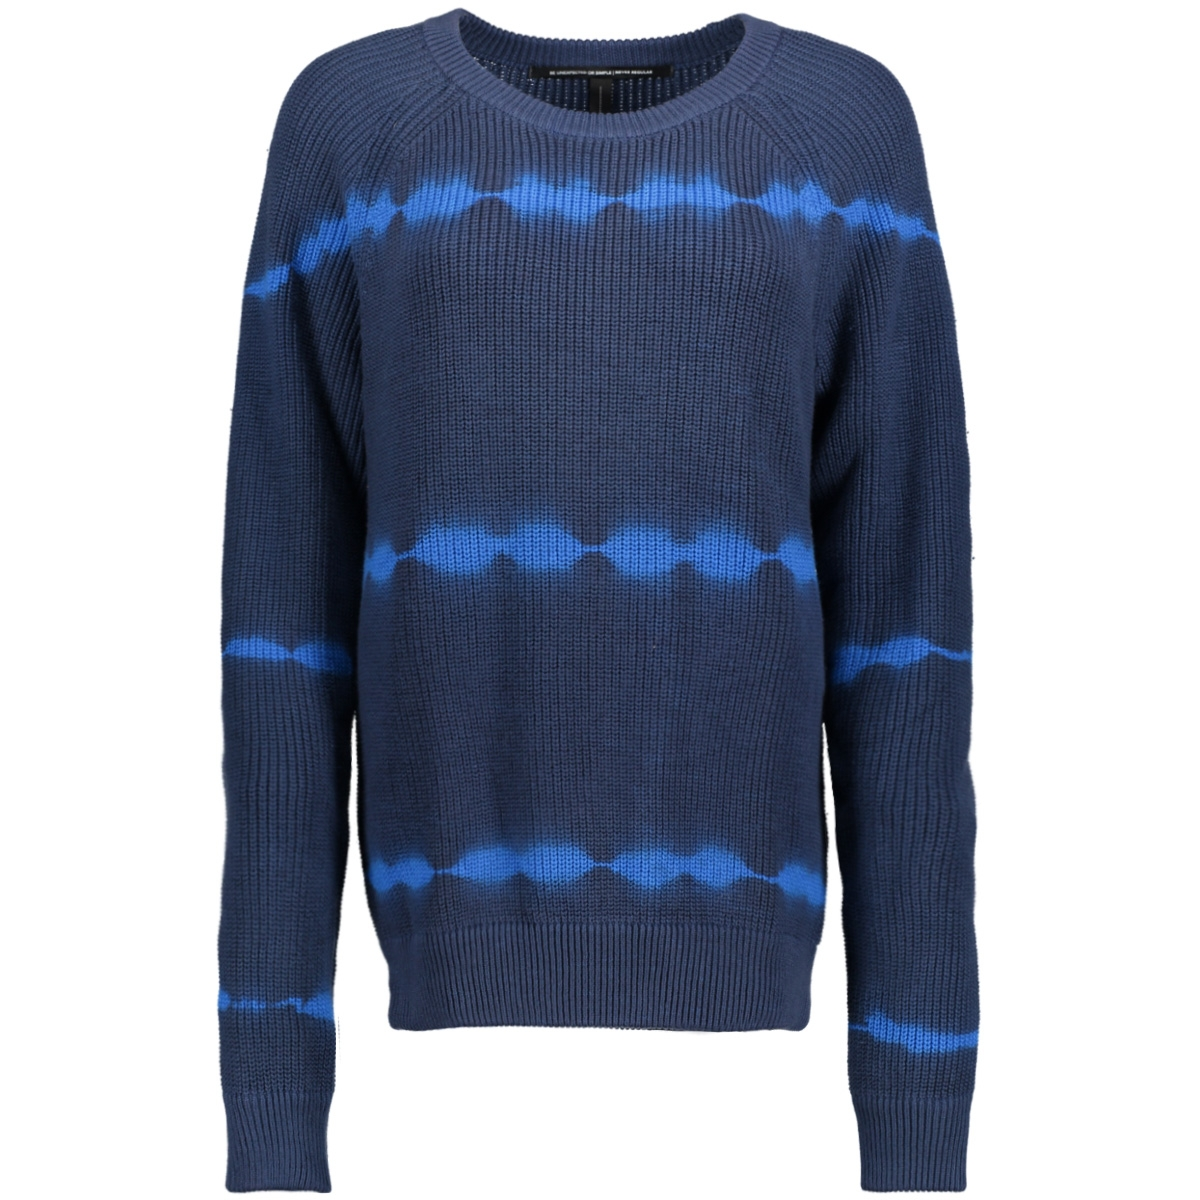 20-608-7103 10 days sweater true blue